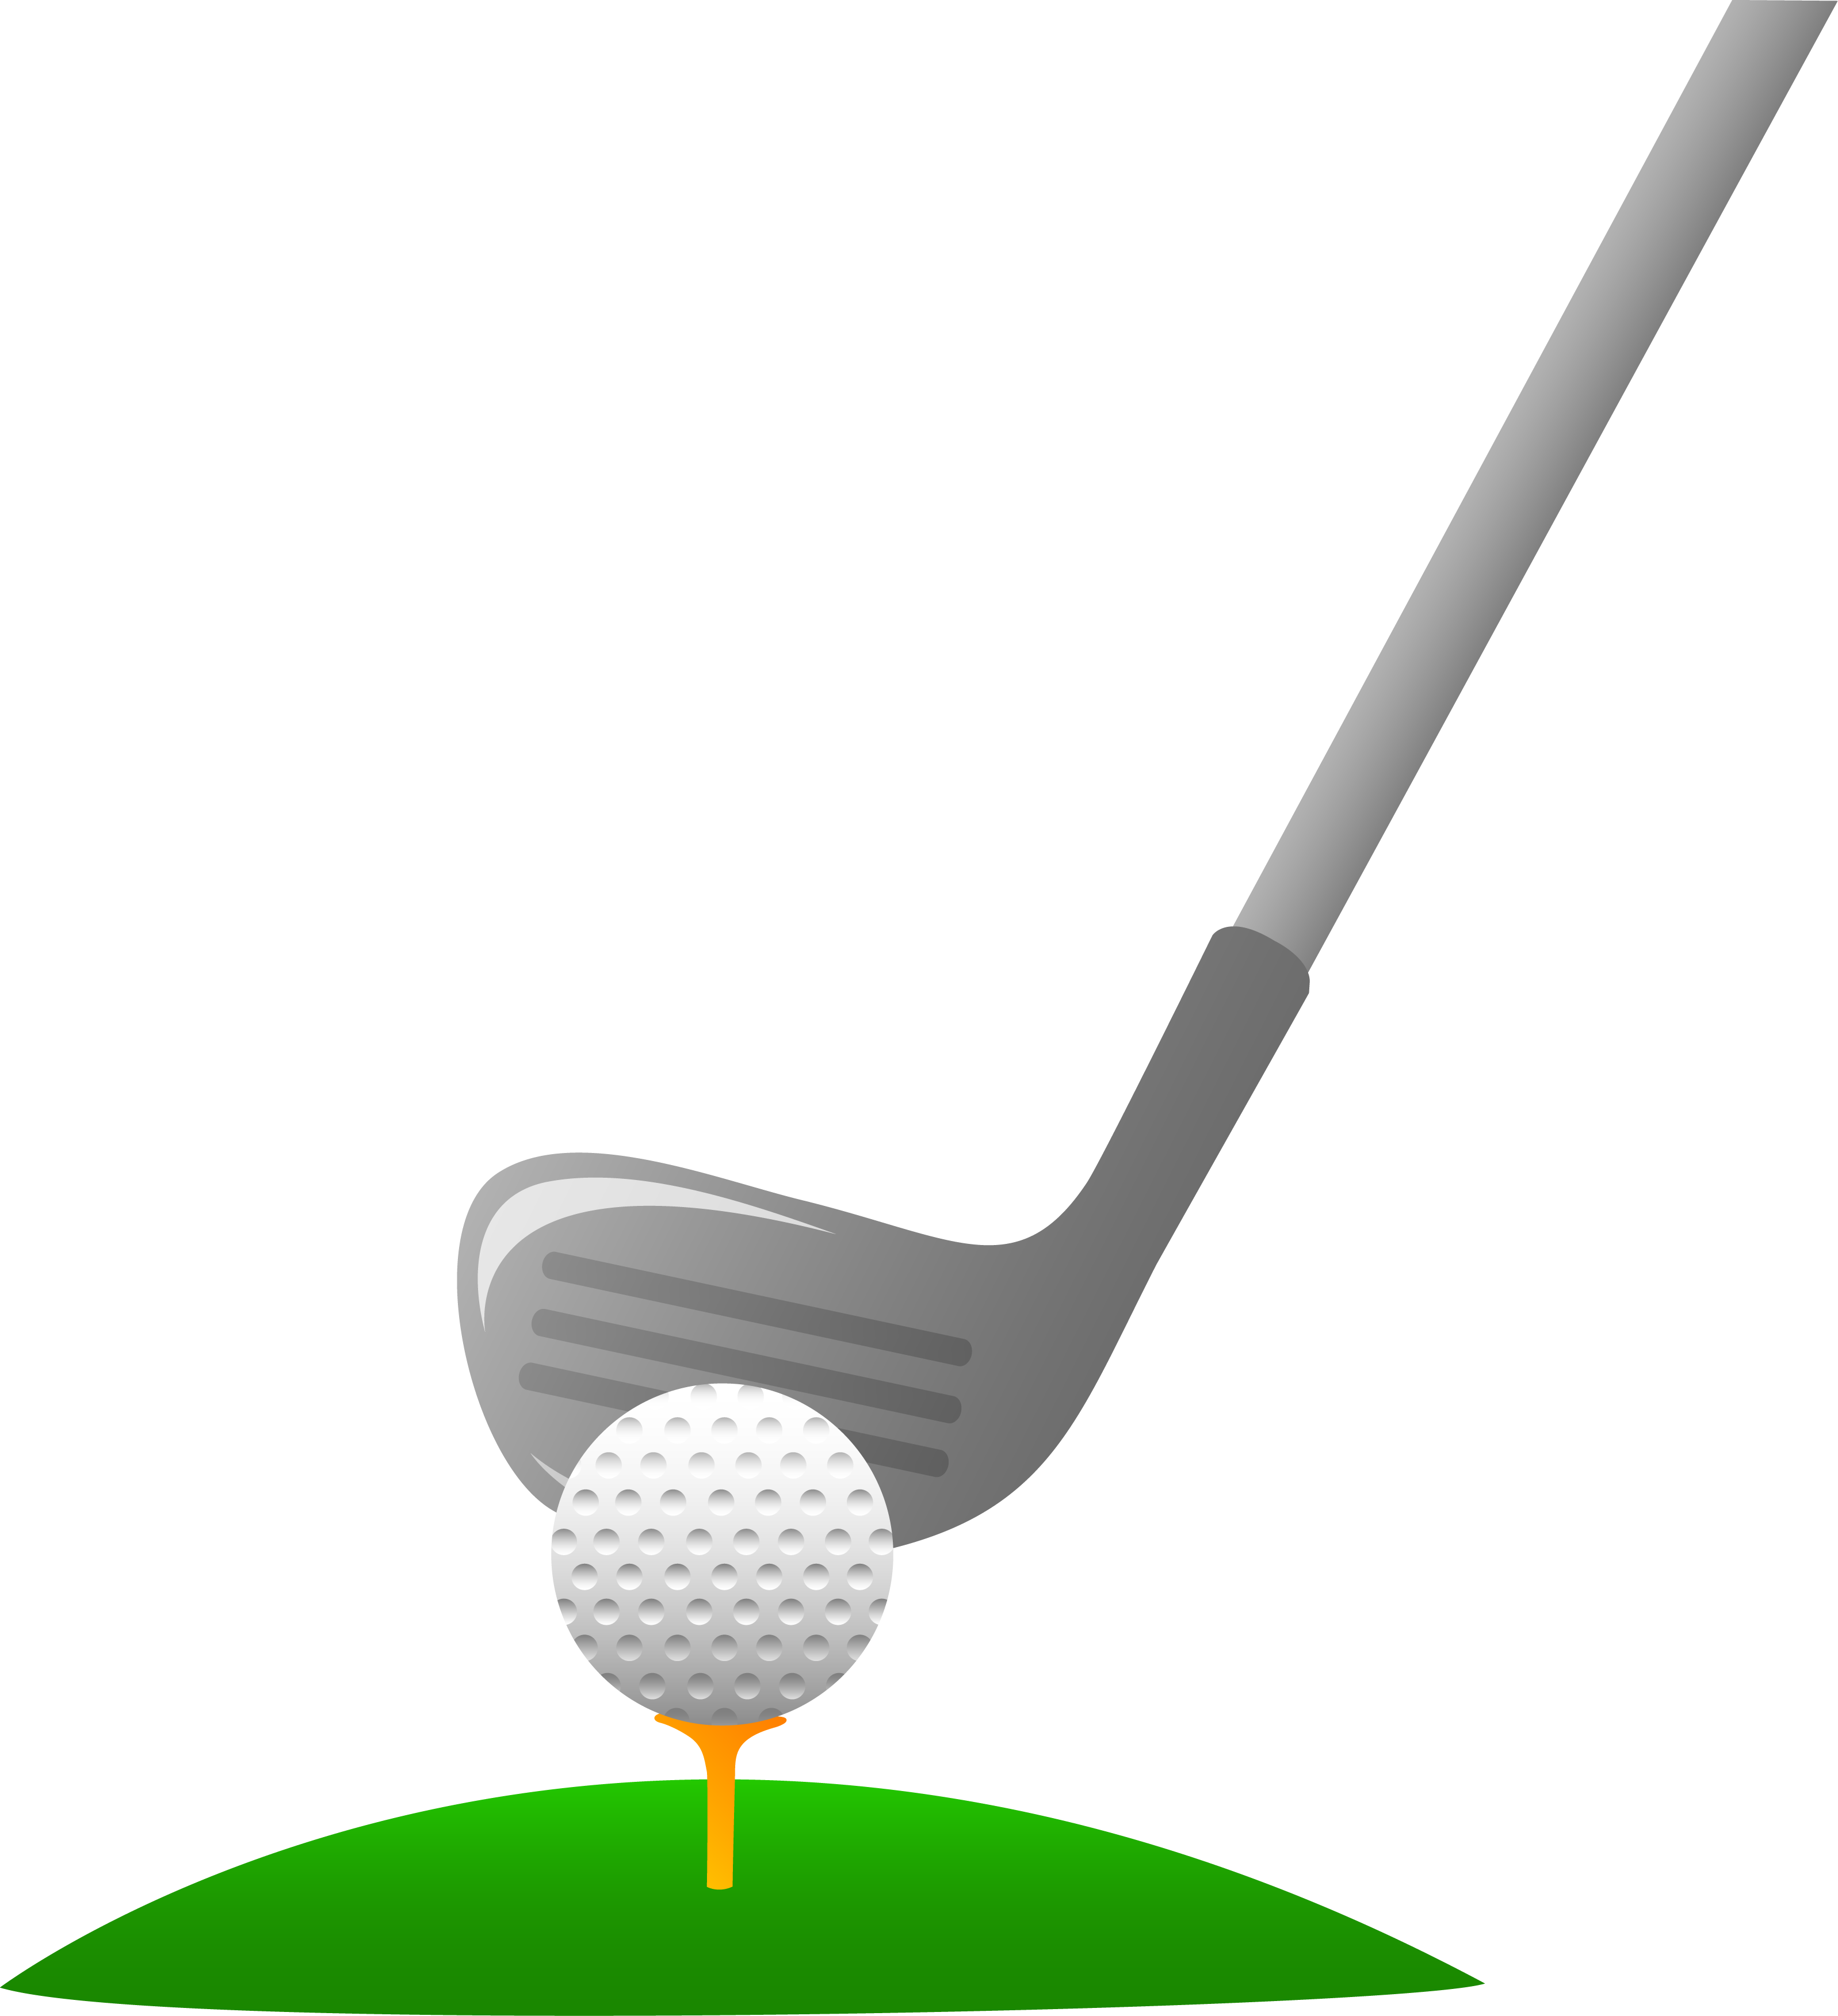 png library stock Golf Club And Ball Clipart